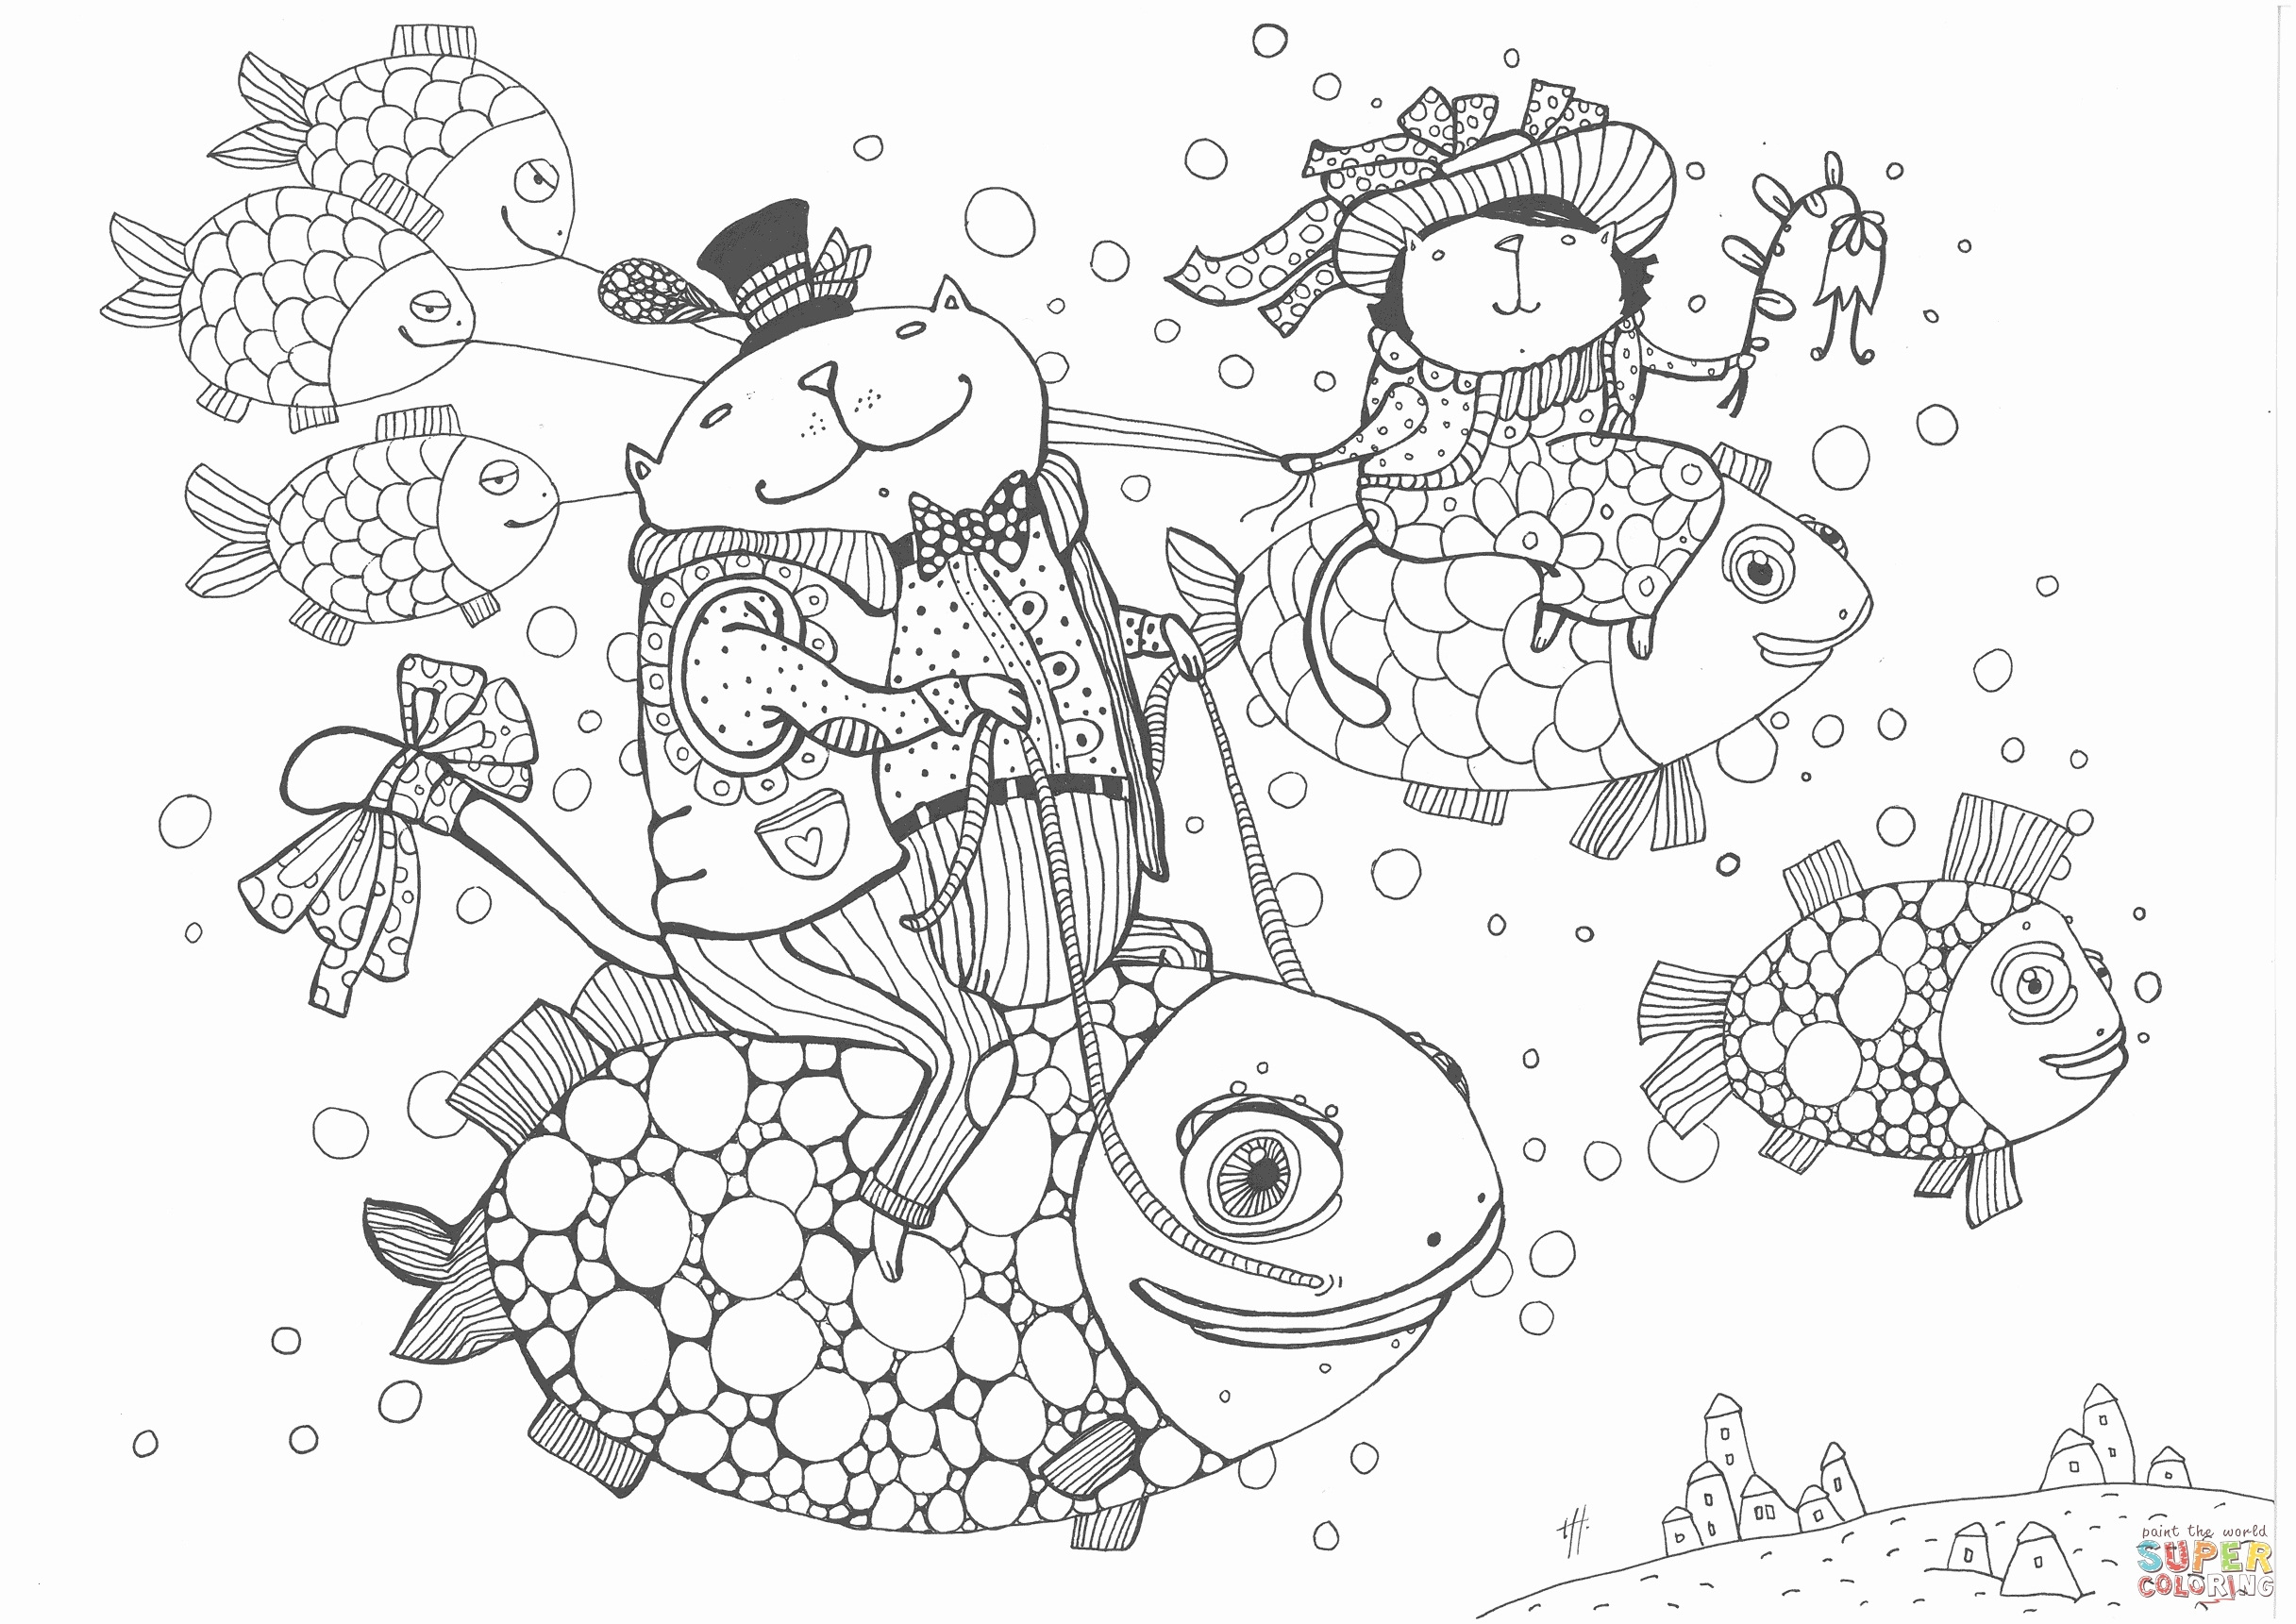 Minion Coloring Pages Free  to Print 13q - To print for your project